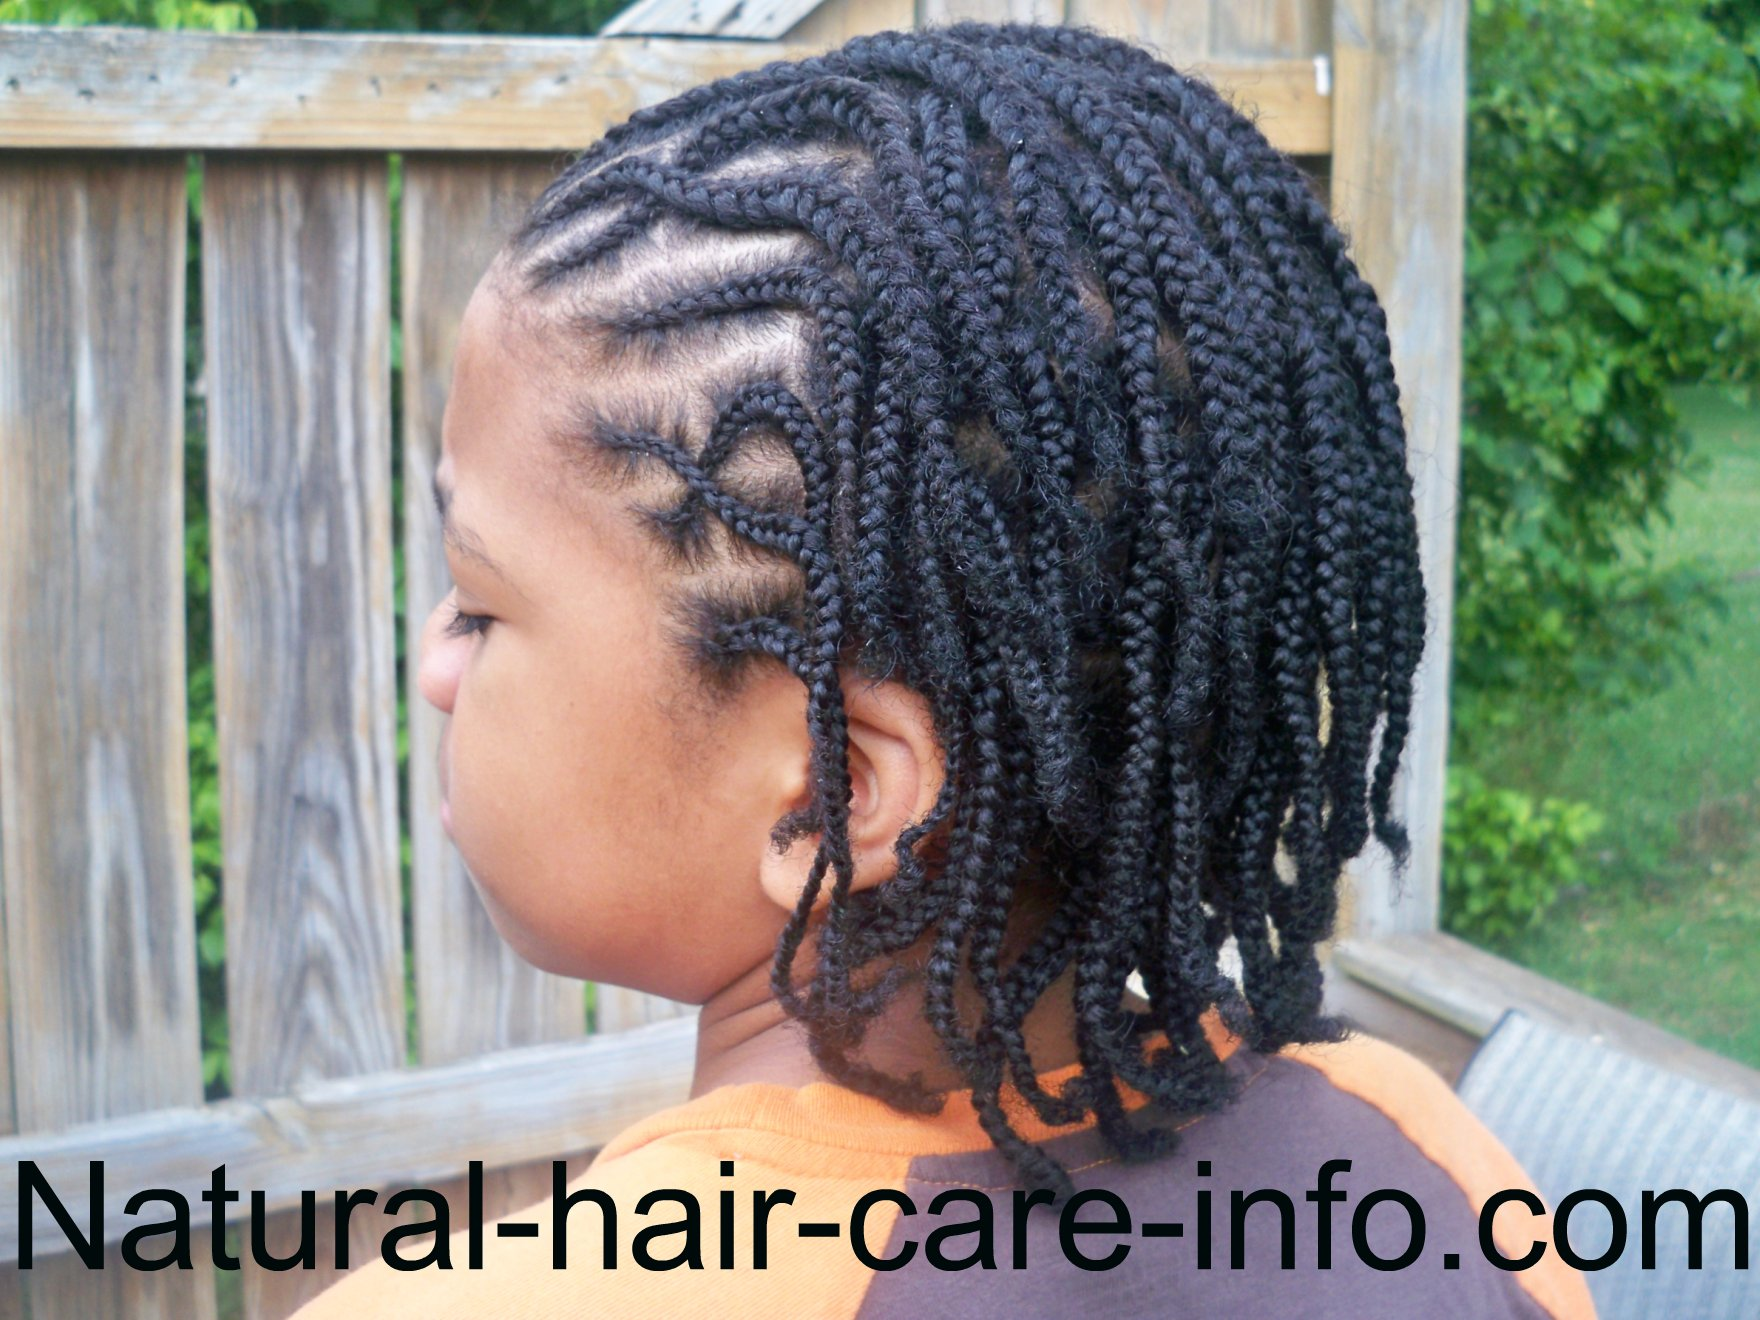 Super Braid Hairstyles For Men Complete List And Tutorials Short Hairstyles For Black Women Fulllsitofus